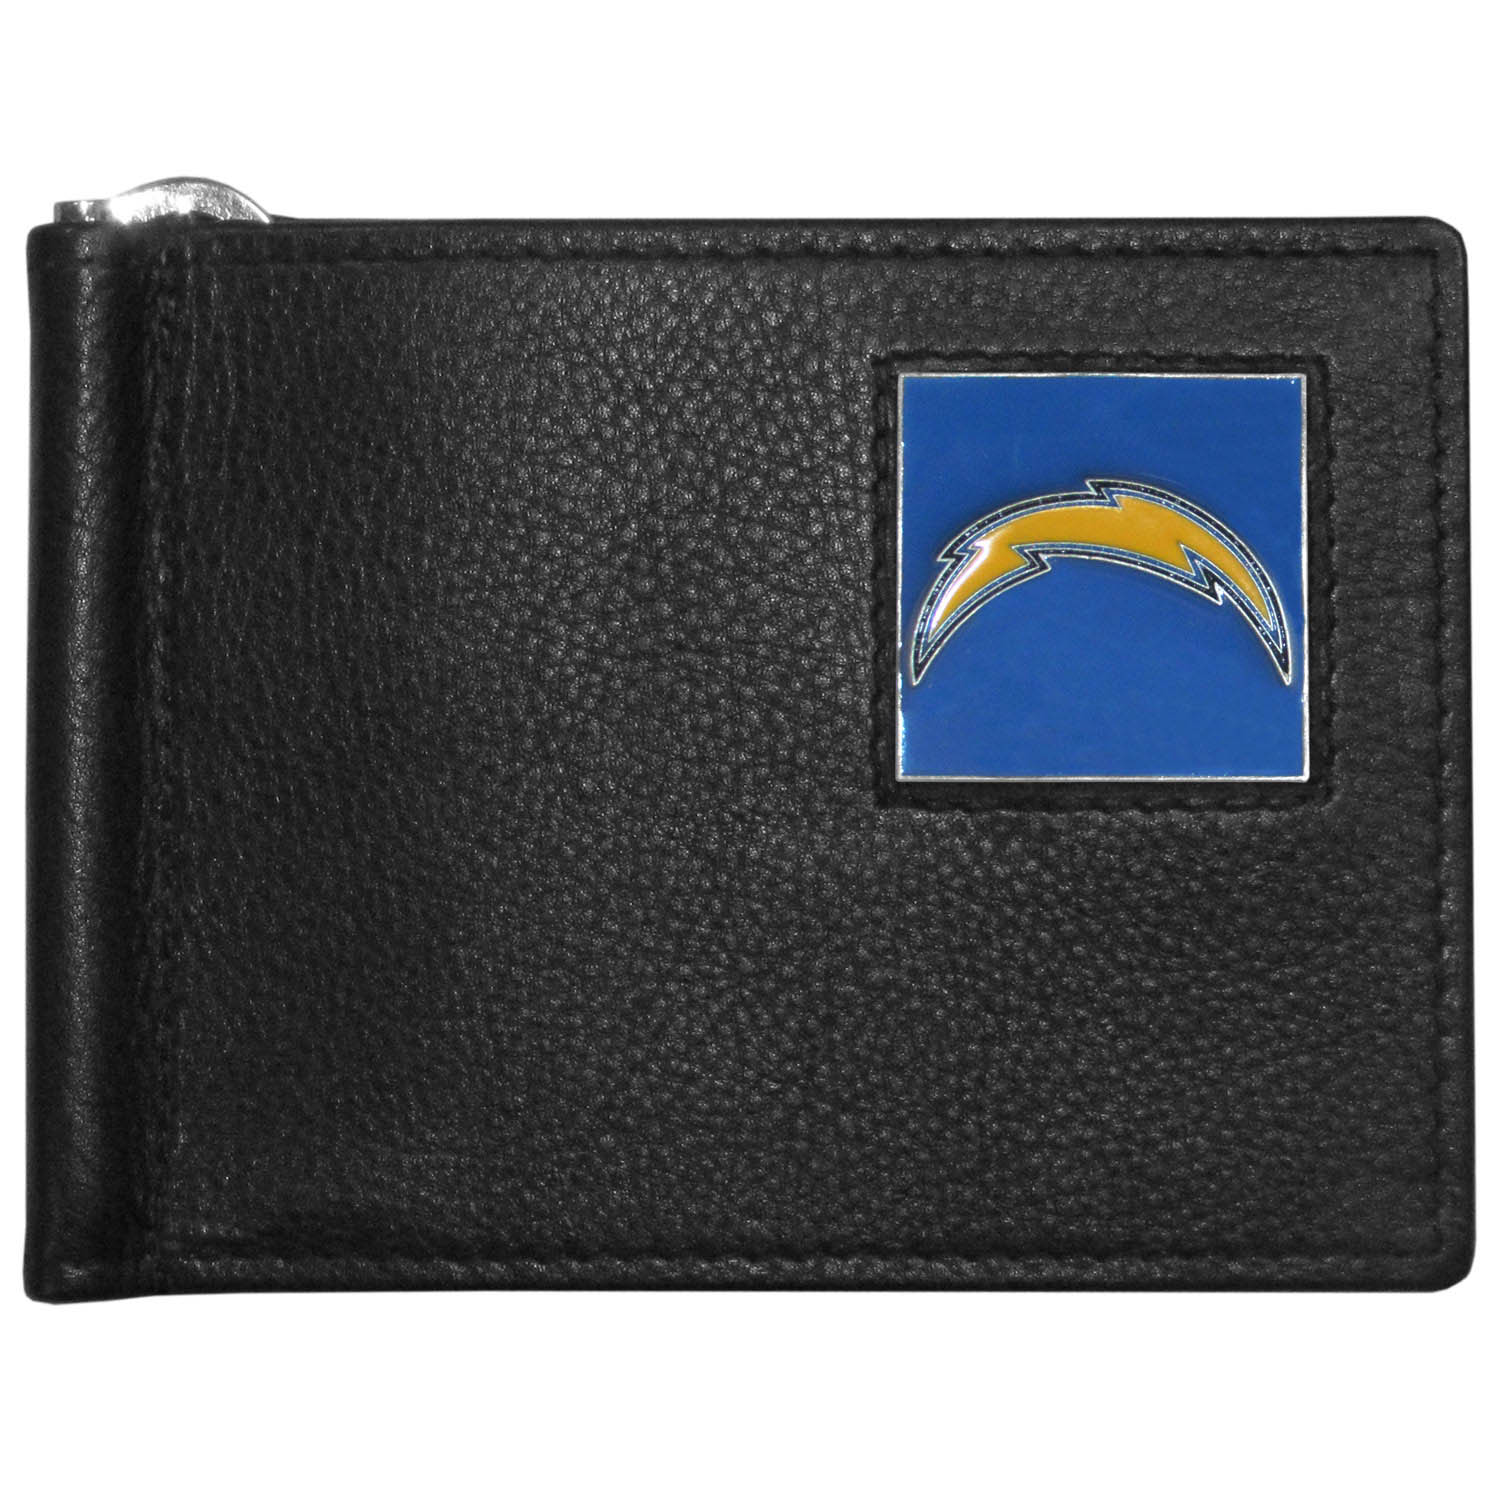 Los Angeles Chargers Leather Bill Clip Wallet - This cool new style wallet features an inner, metal bill clip that lips up for easy access. The super slim wallet holds tons of stuff with ample pockets, credit card slots & windowed ID slot.  The wallet is made of genuine fine grain leather and it finished with a metal Los Angeles Chargers emblem. The wallet is shipped in gift box packaging.